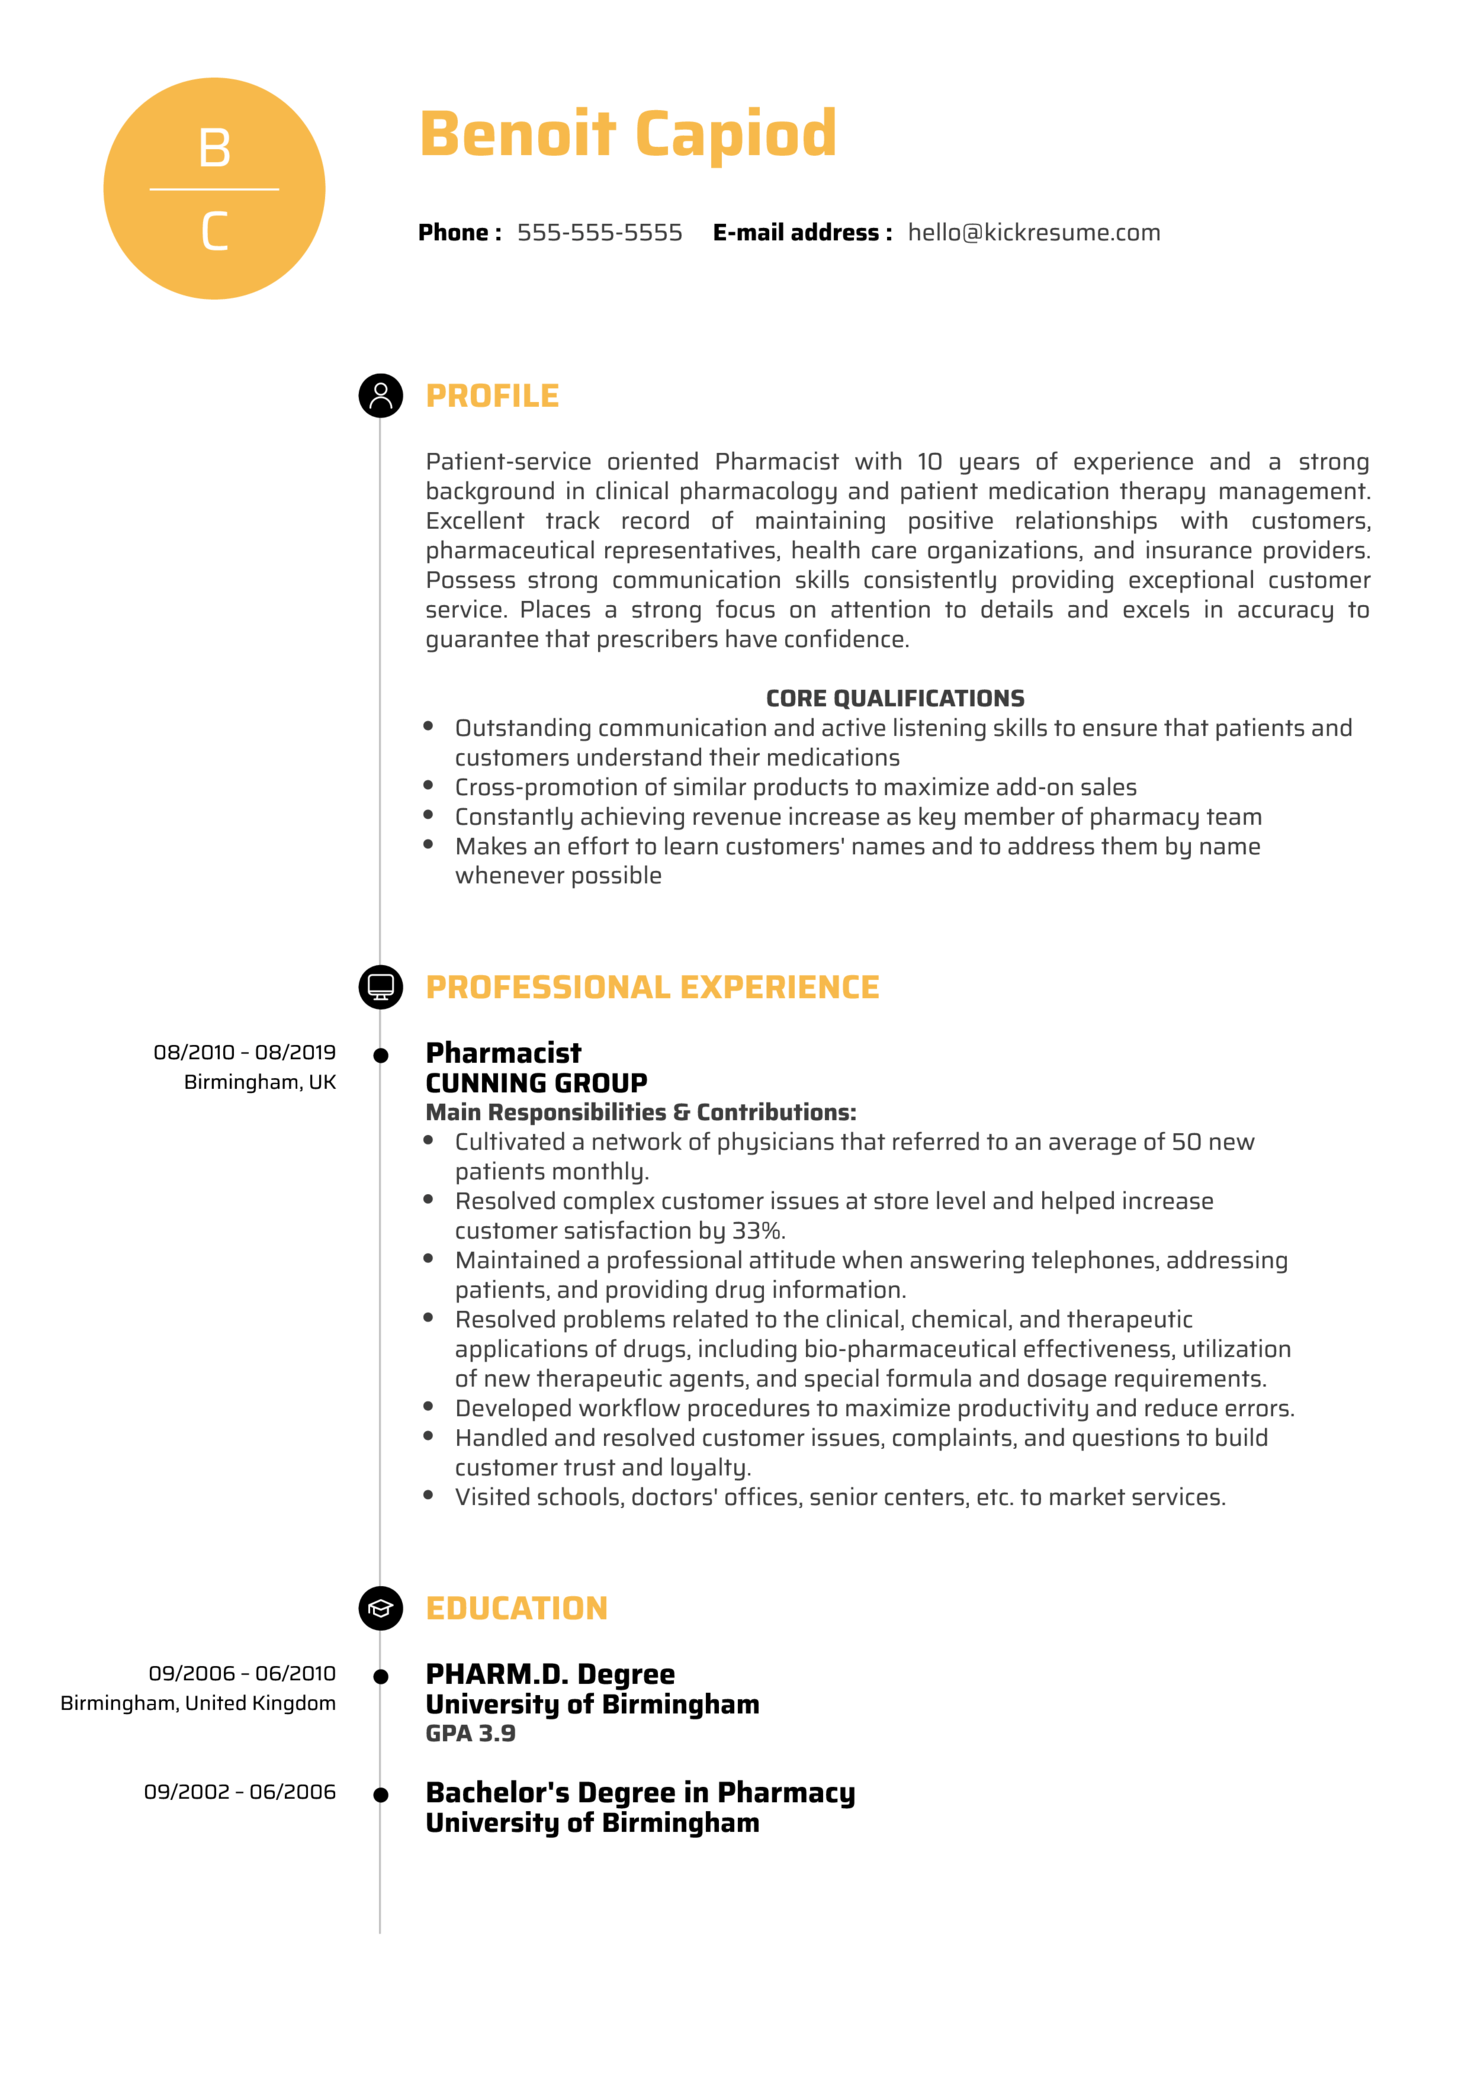 Pharmacist Resume Sample (časť 1)